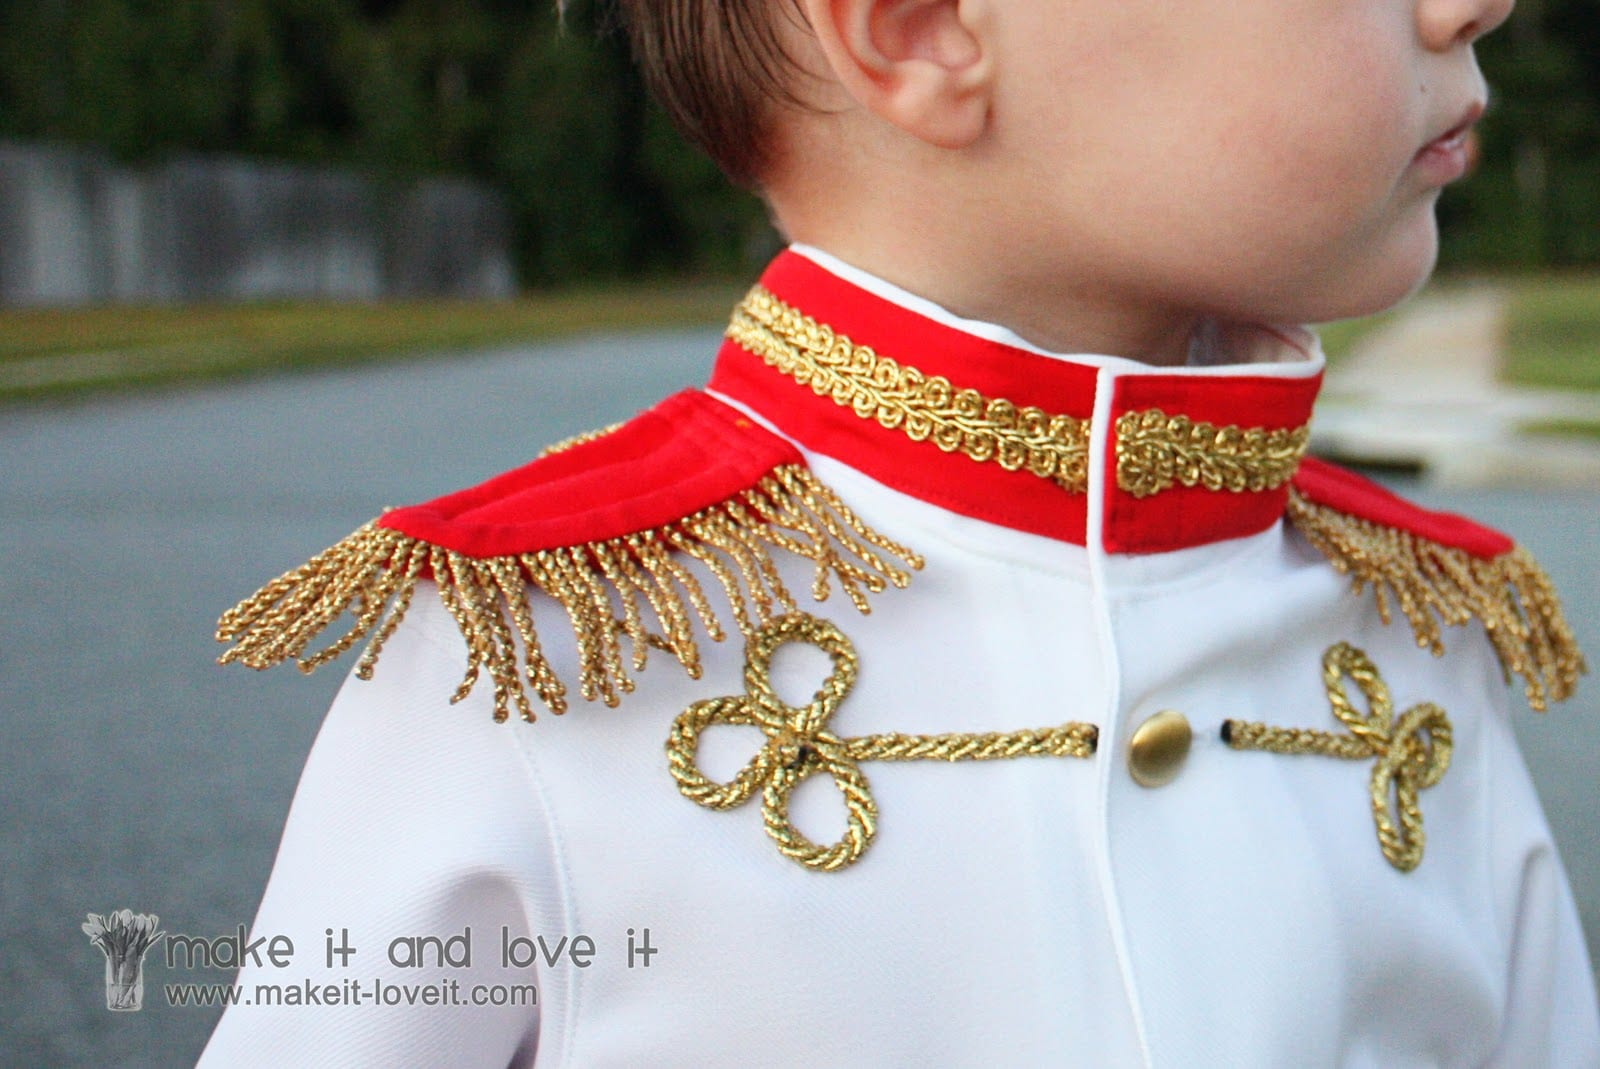 Prince Charming Costume Tutorial (from Cinderella)